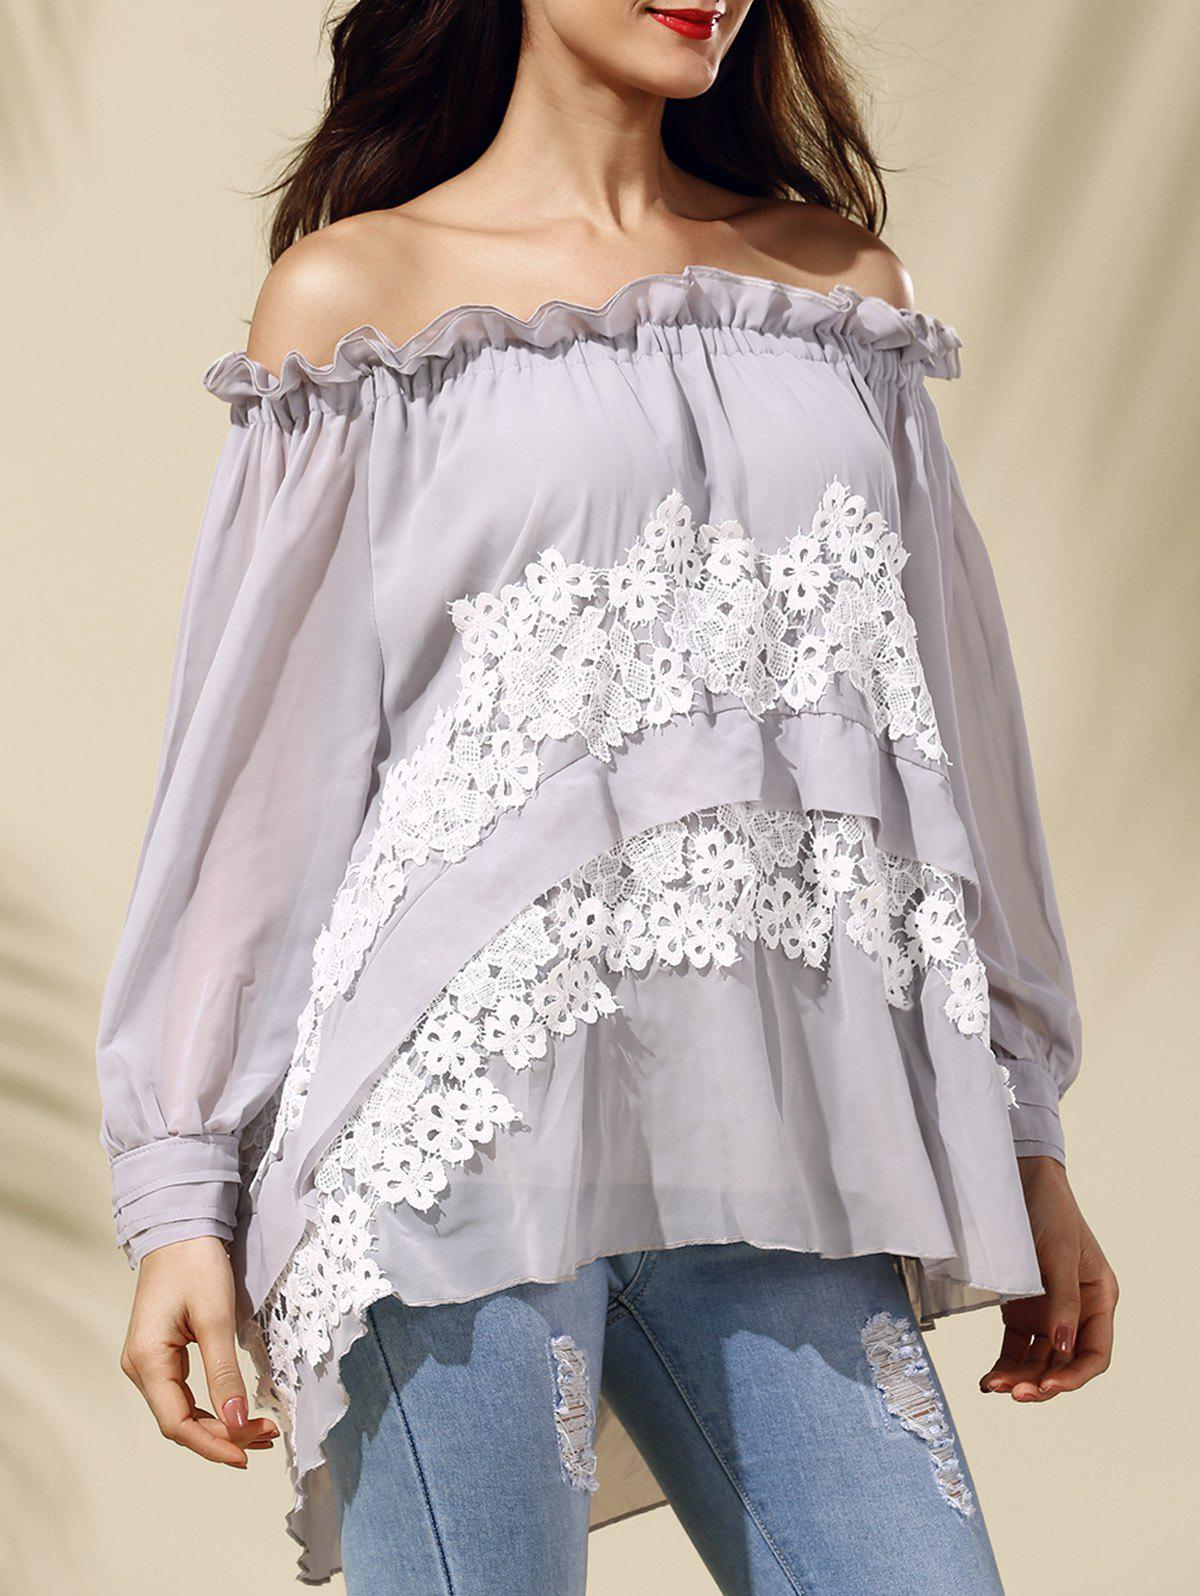 Chic Off The Shoulder Asymmetrical Lace Spliced Women's Blouse - LIGHT GRAY M